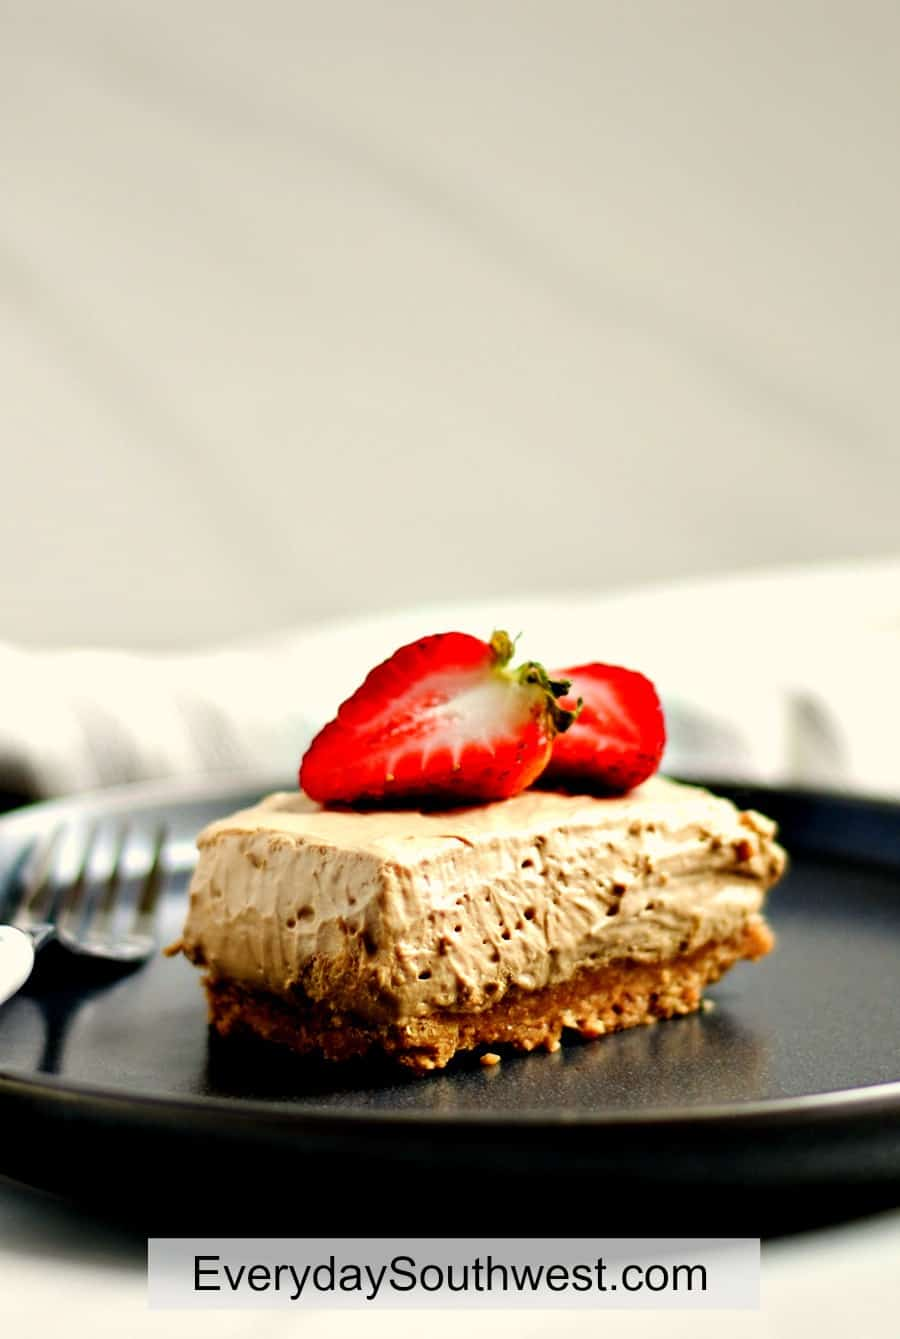 Whipped Coffee No Bake Cheesecake with Strawberries